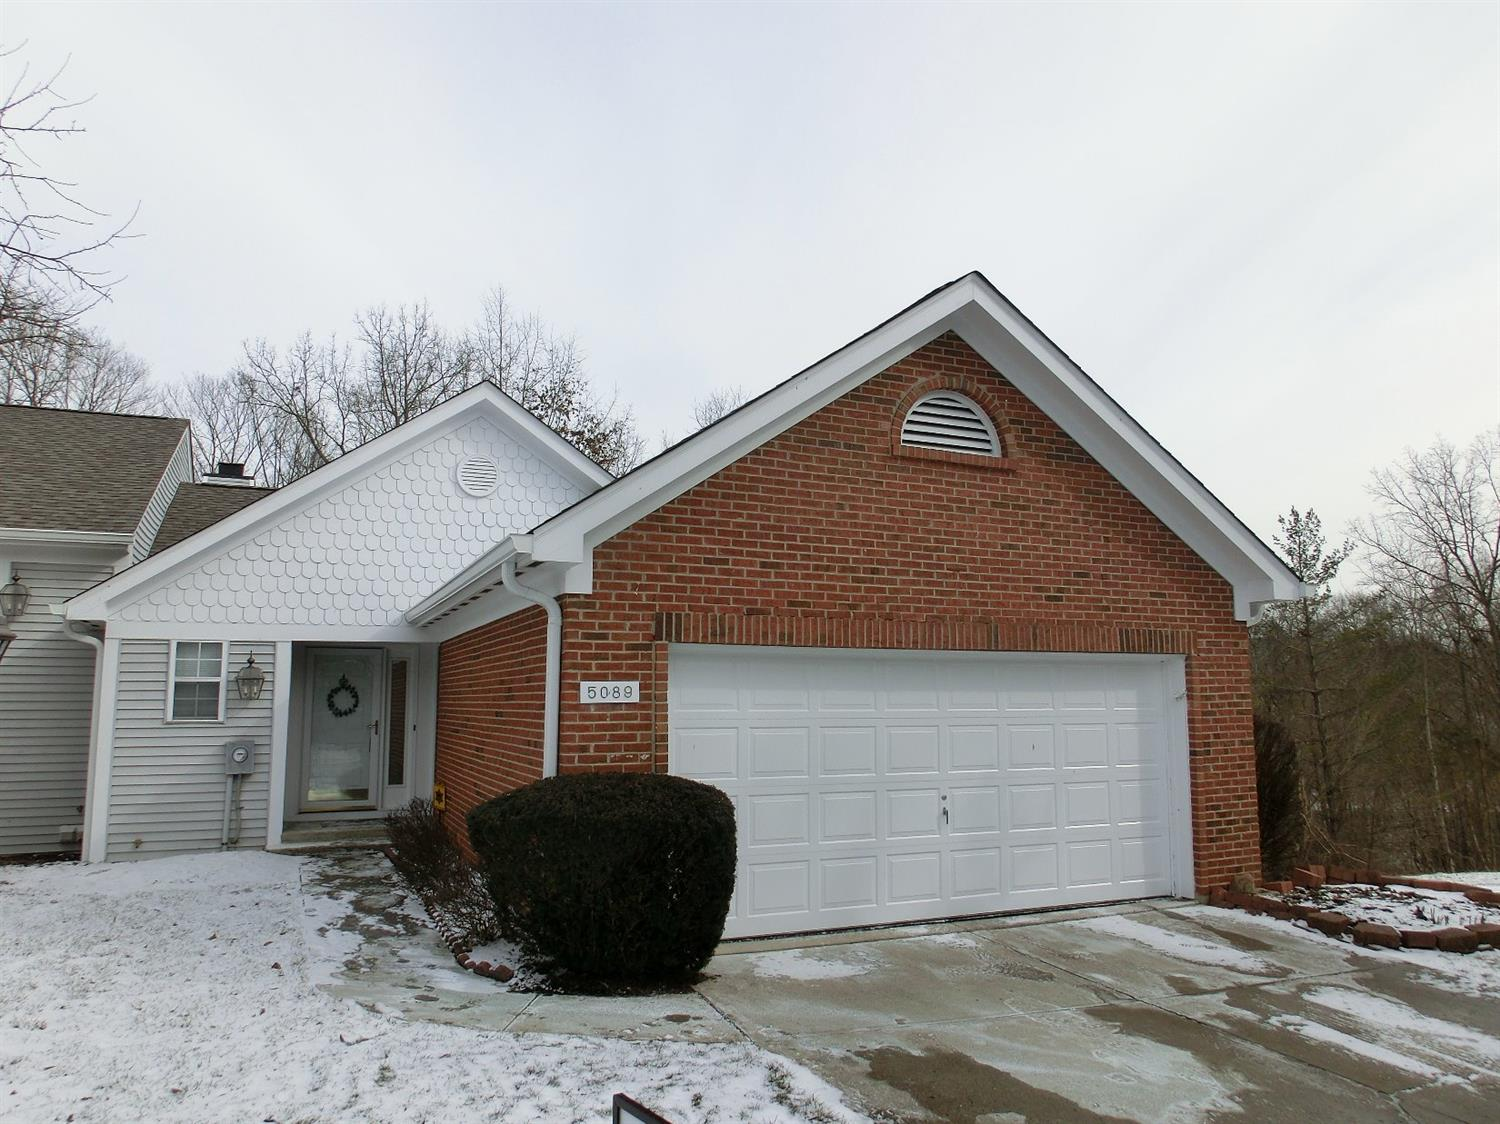 Property for sale at 5089 White Chapel Lane, Loveland,  OH 45140